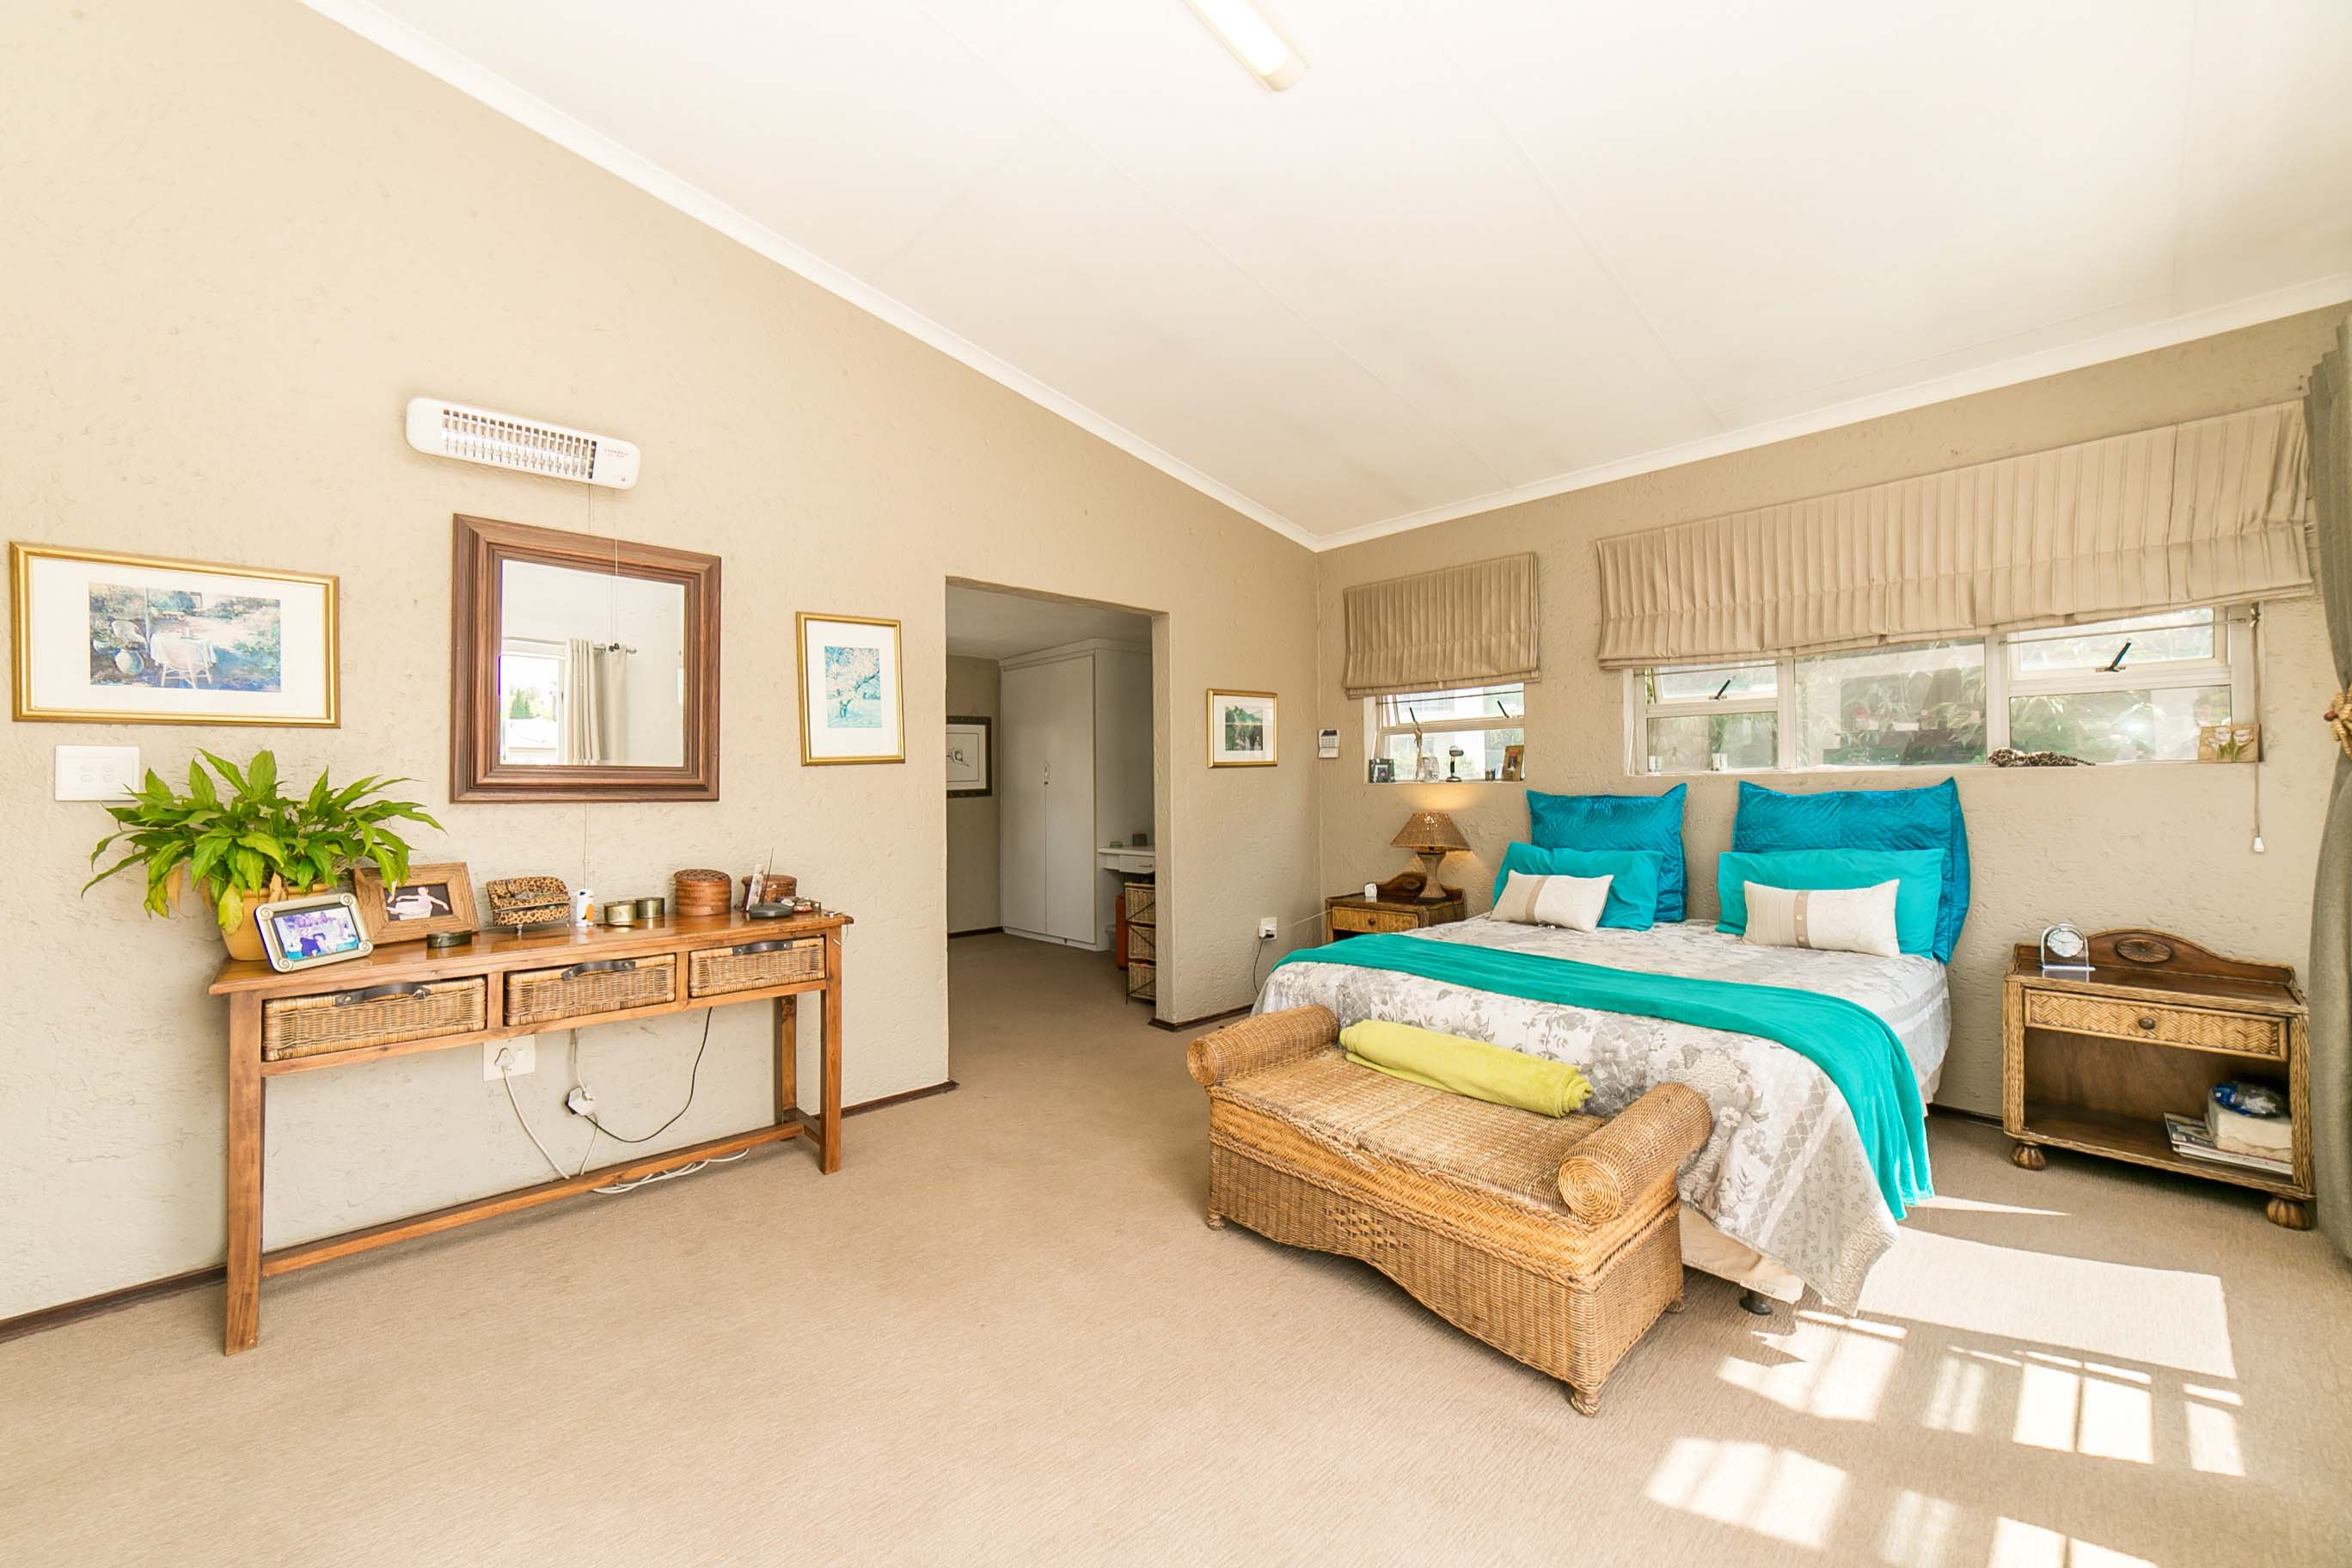 4 Bedroom House for sale in Lonehill ENT0082001 : photo#14